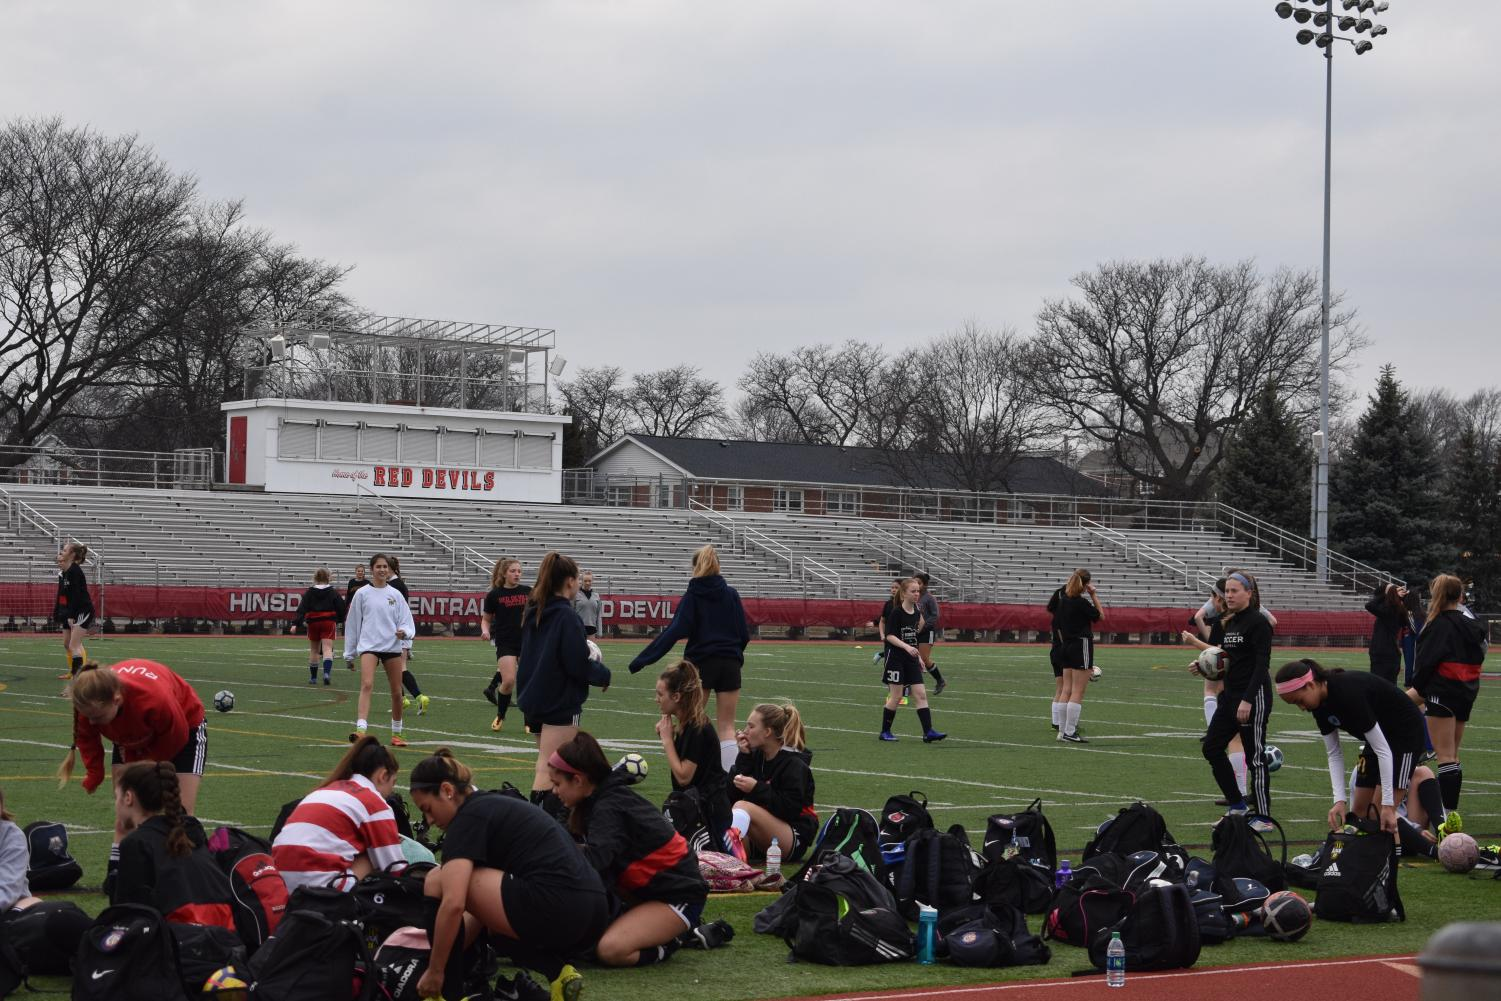 Soccer, along with many other spring sports, held tryouts this week.